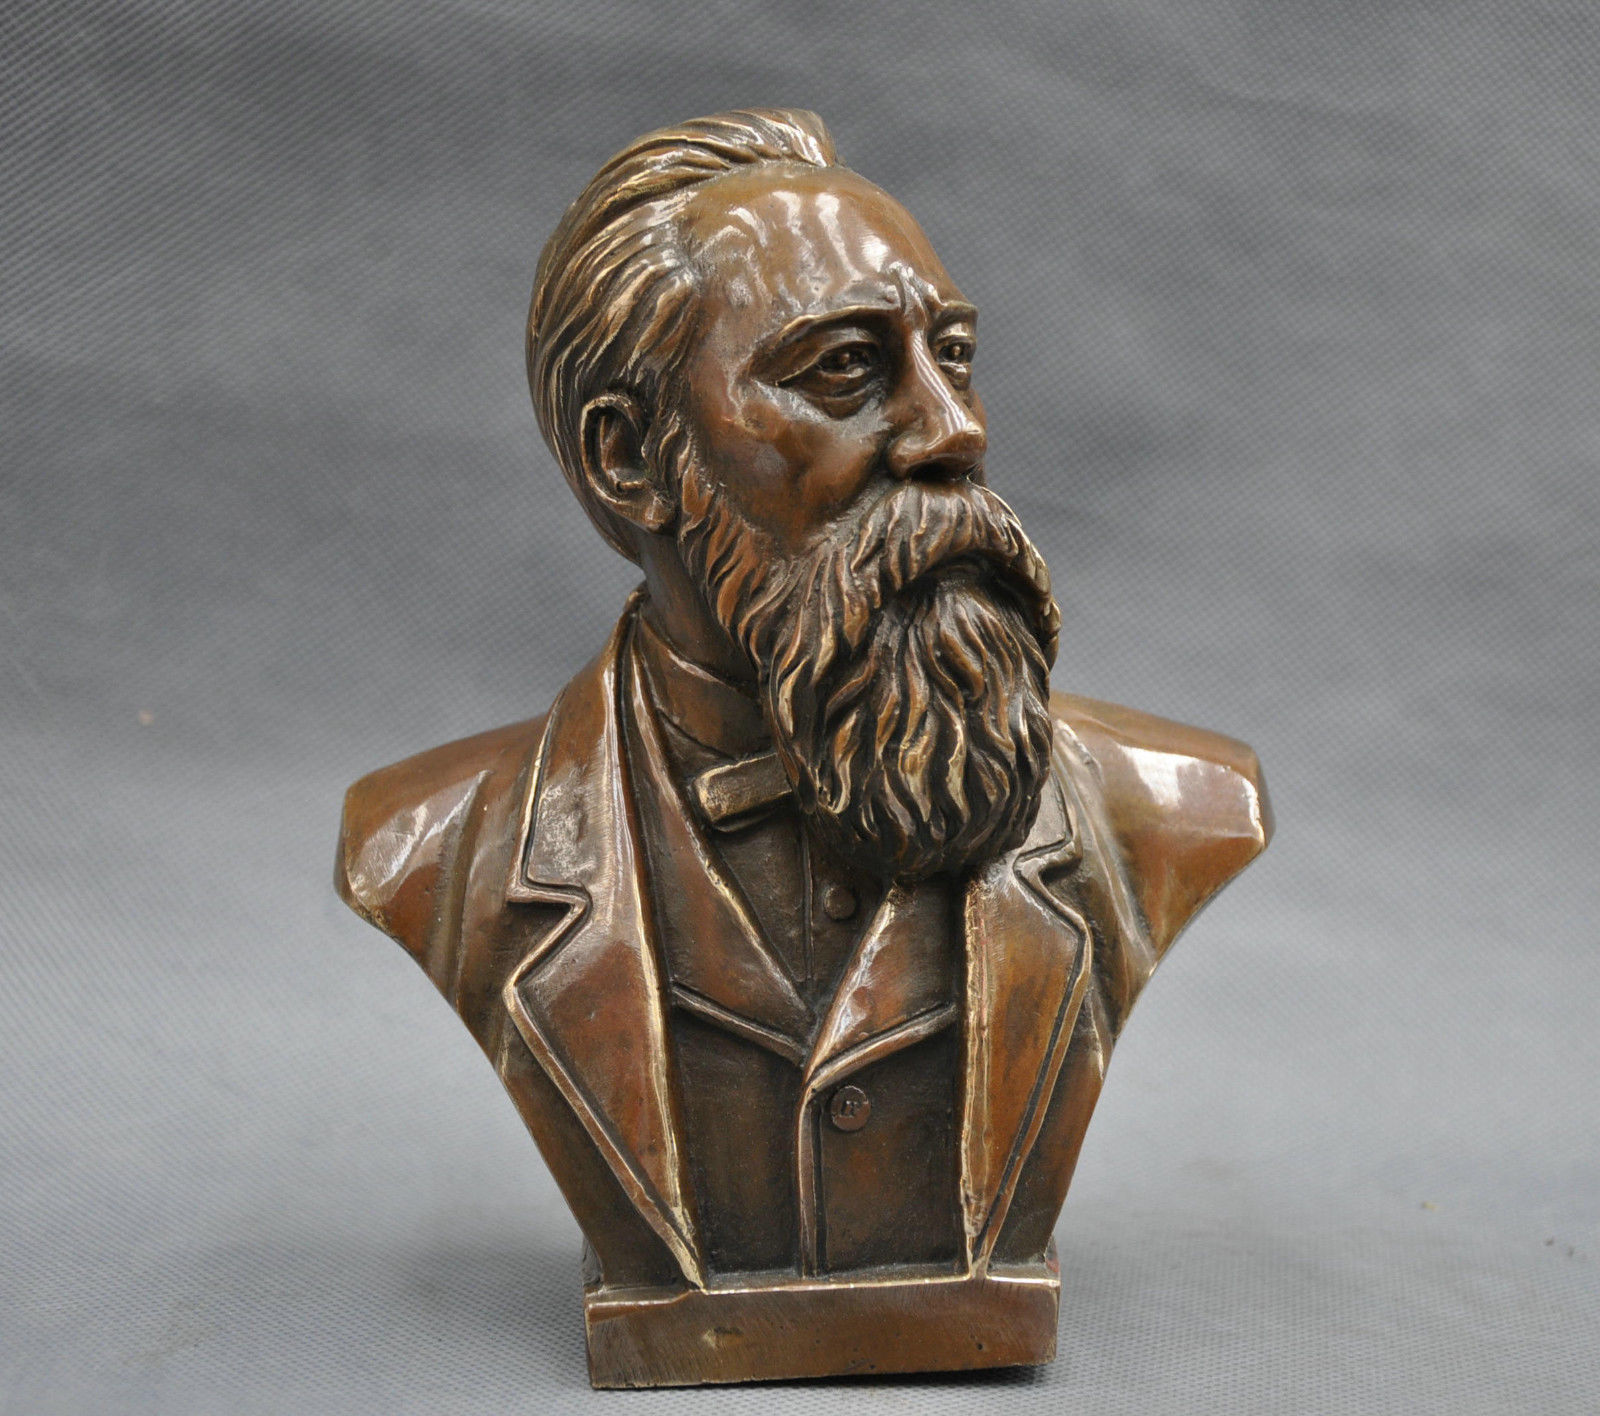 7 China Pure Bronze Communist Friedrich Von Engels Bust Statue7 China Pure Bronze Communist Friedrich Von Engels Bust Statue